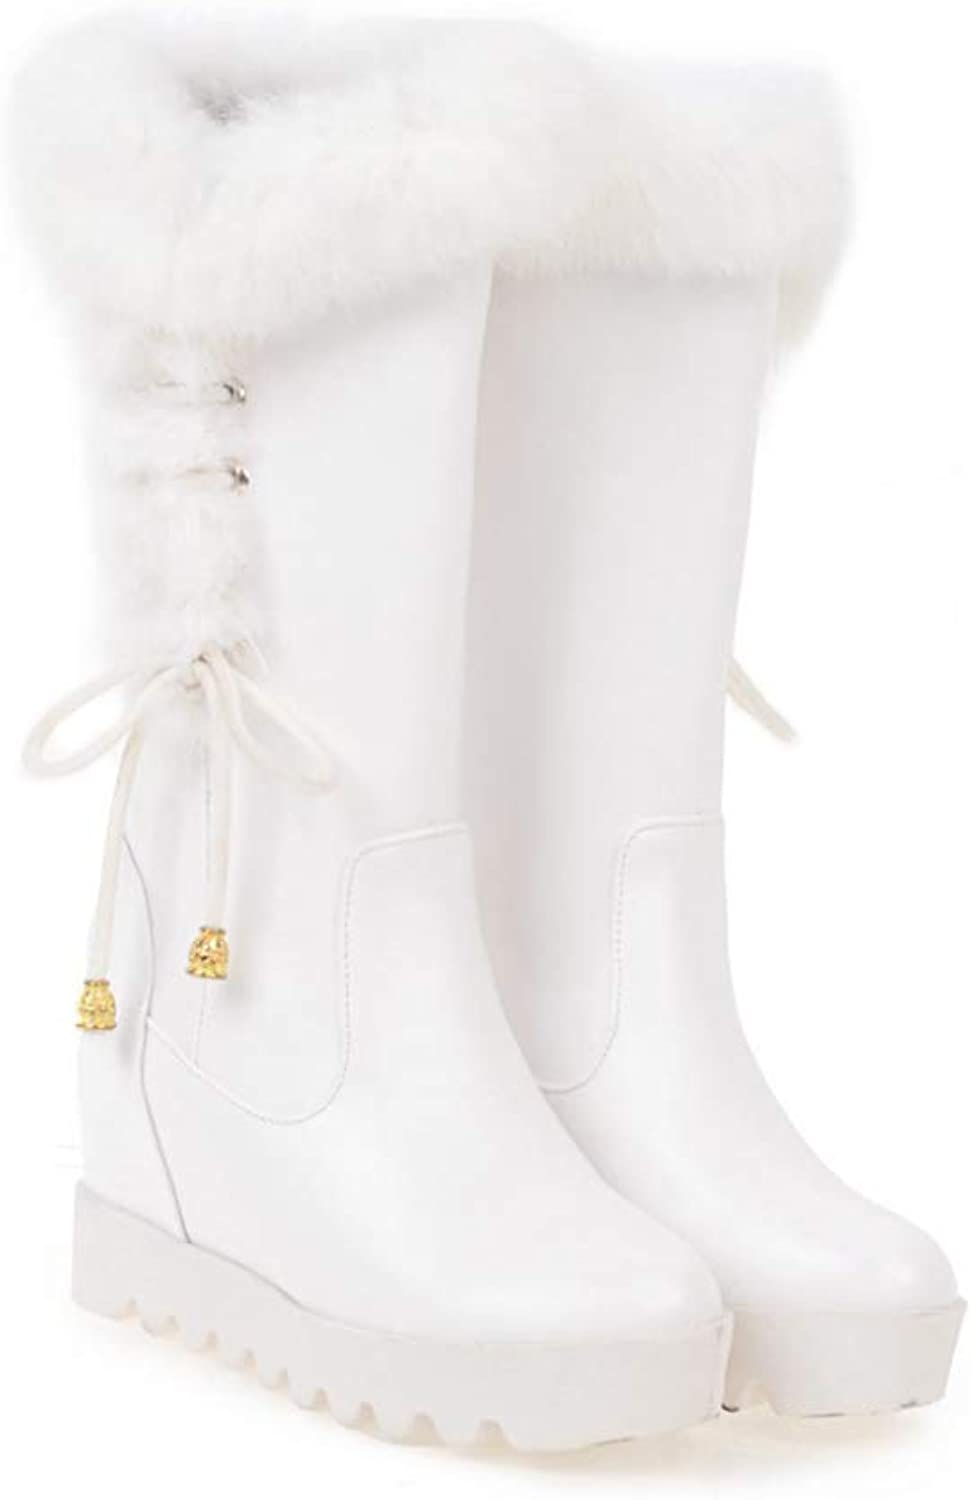 Winter Women Boots Wide Calf, Plush Lined Slip-on Soft Snow Boots,Internal Raised Flat Waterproof Snow Boot EU 35.5-41,White-39CN